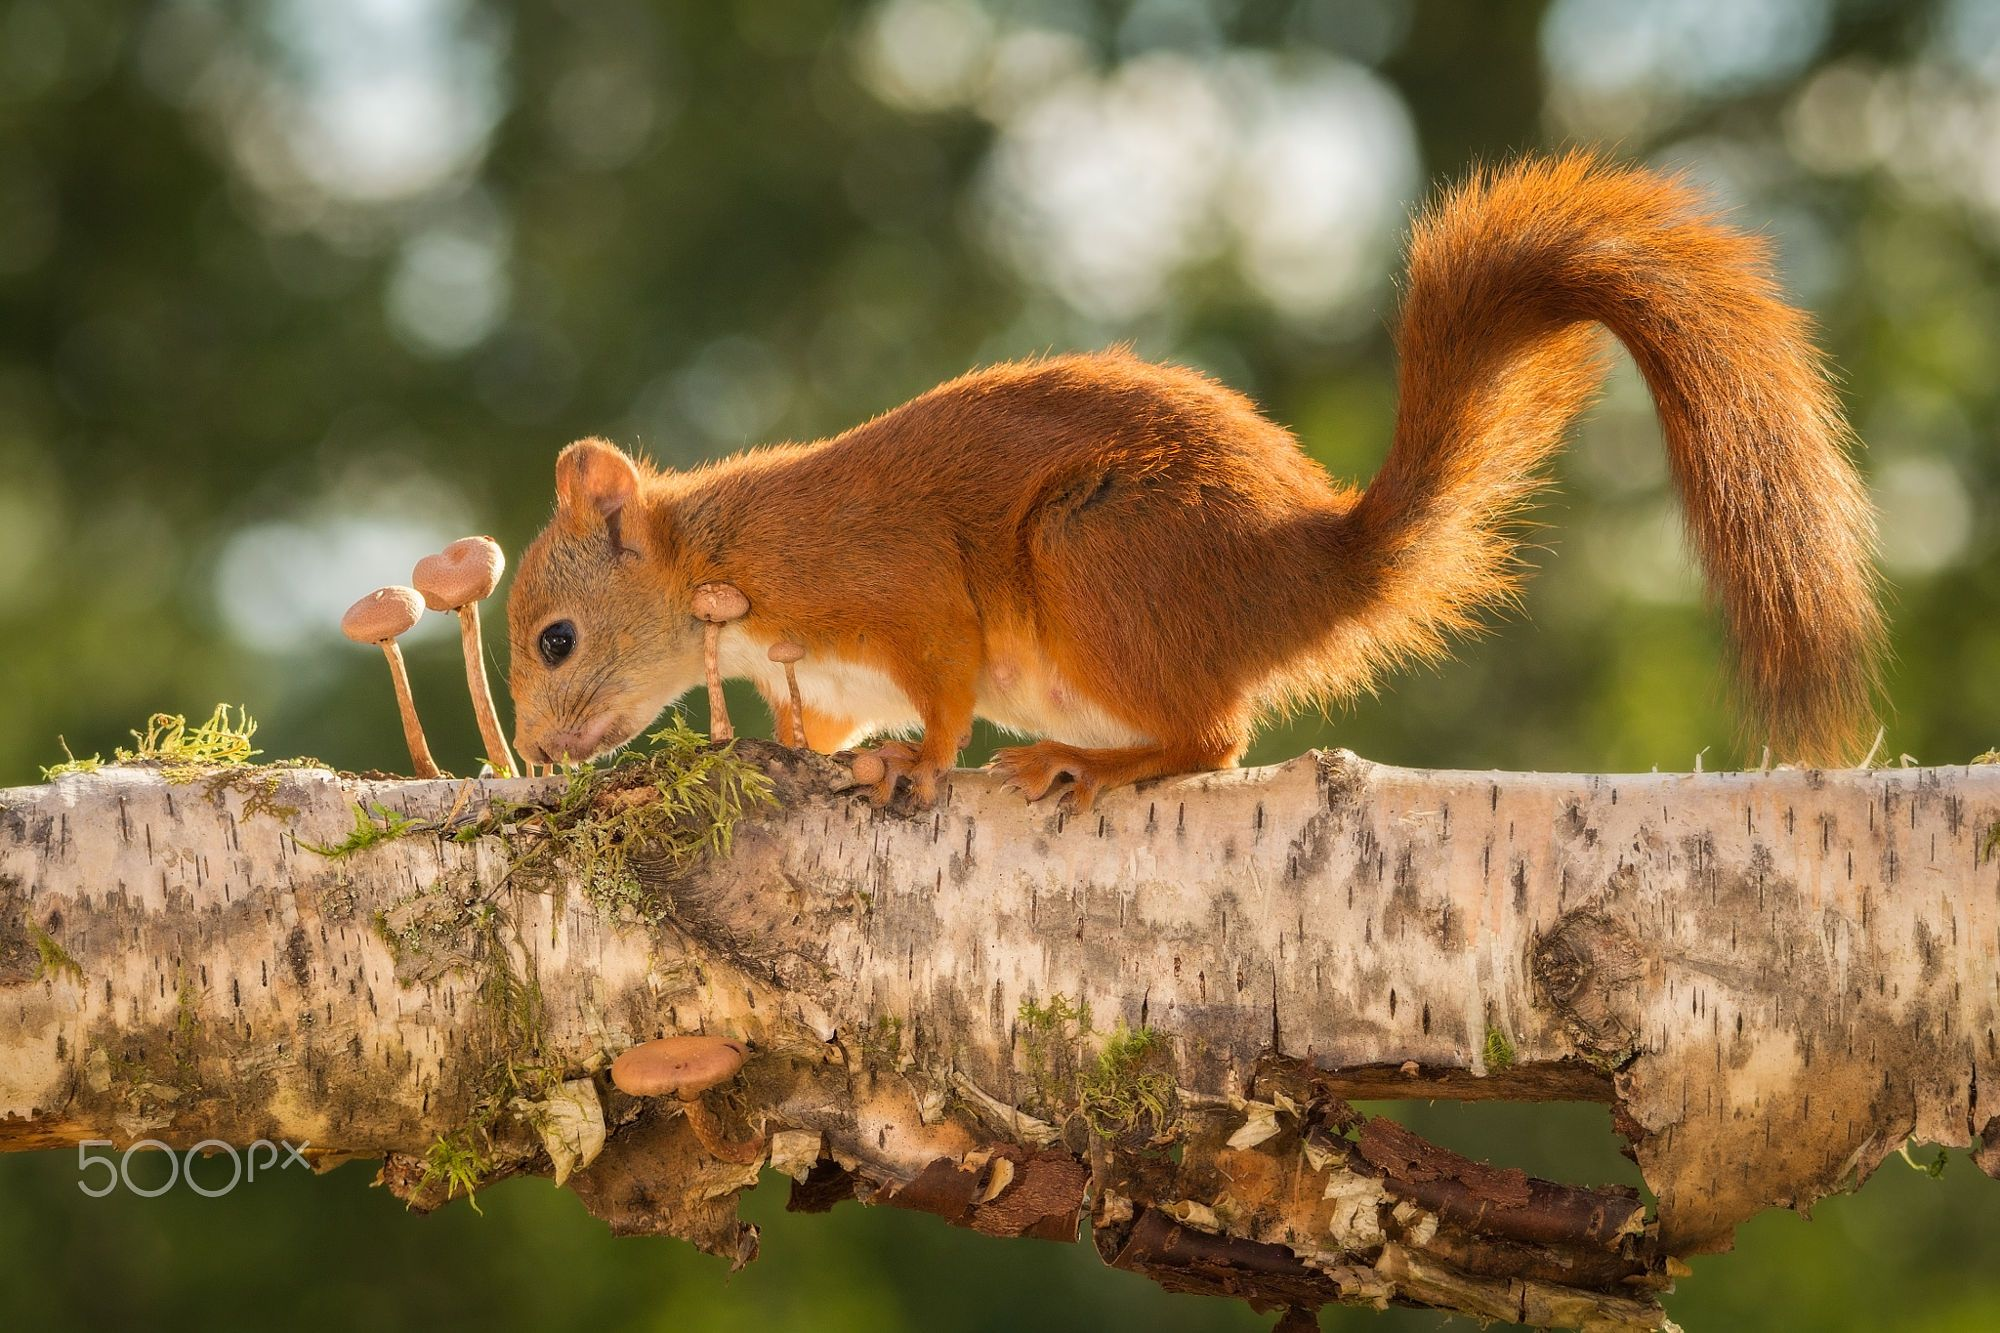 Red Squirrels Standing On Tree With Mushrooms Geert